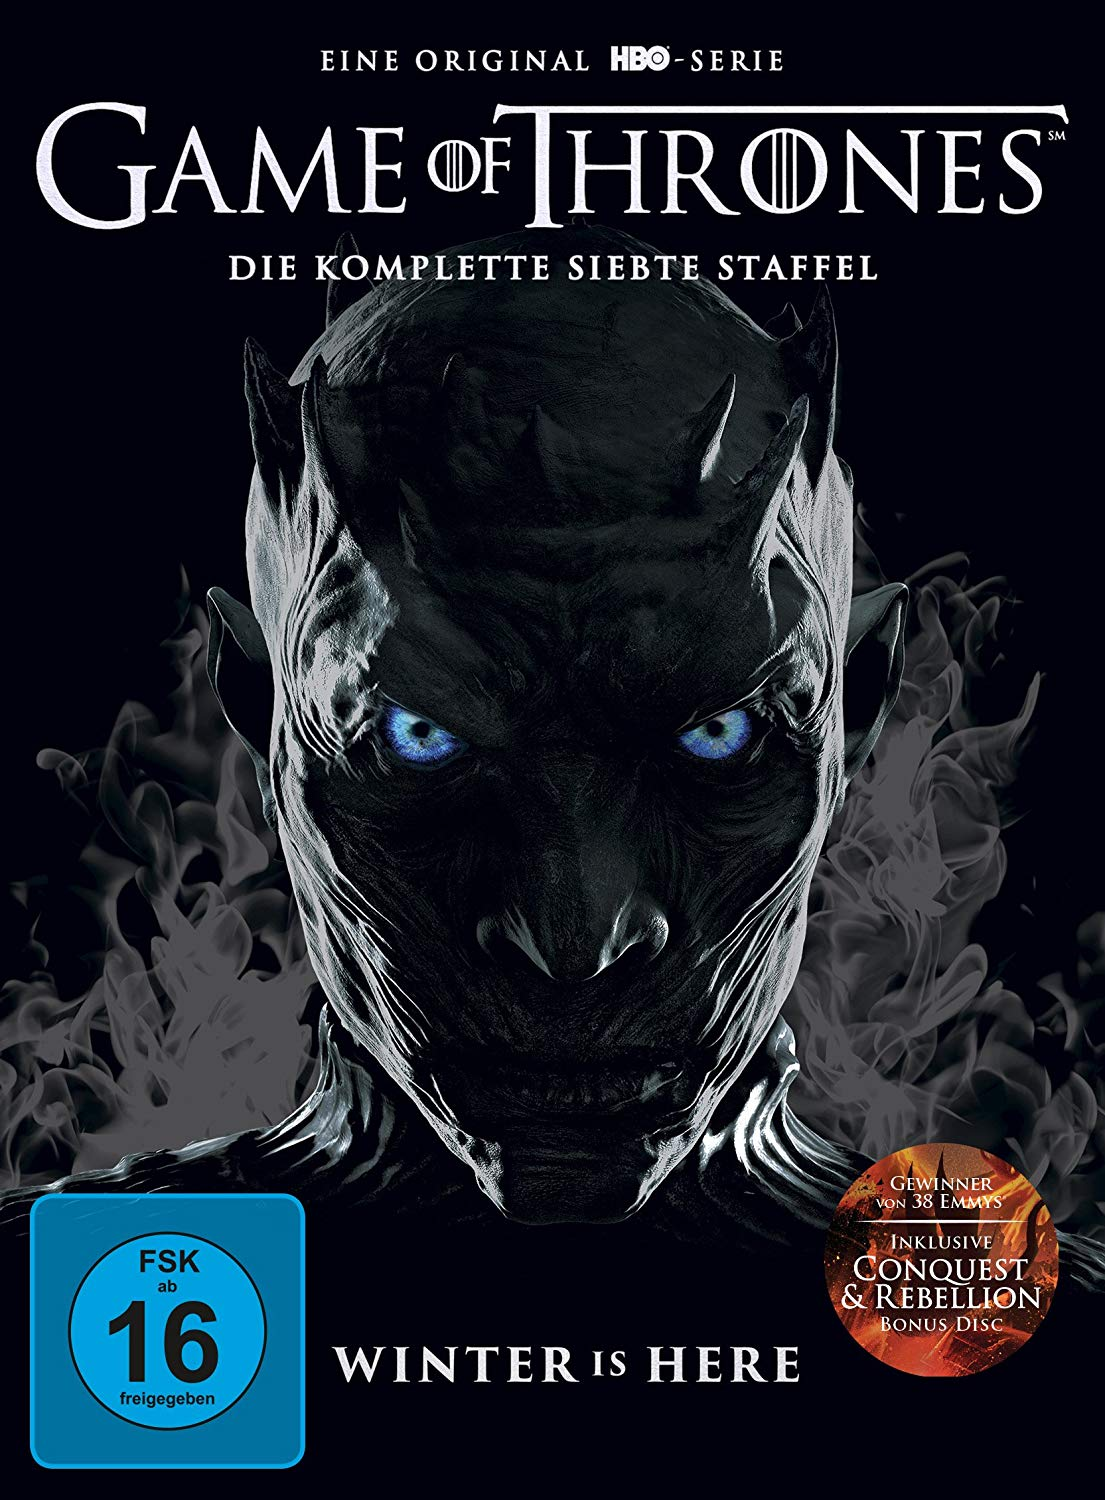 Game of Thrones - Die komplette 7. Staffel bei Amazon bestellen